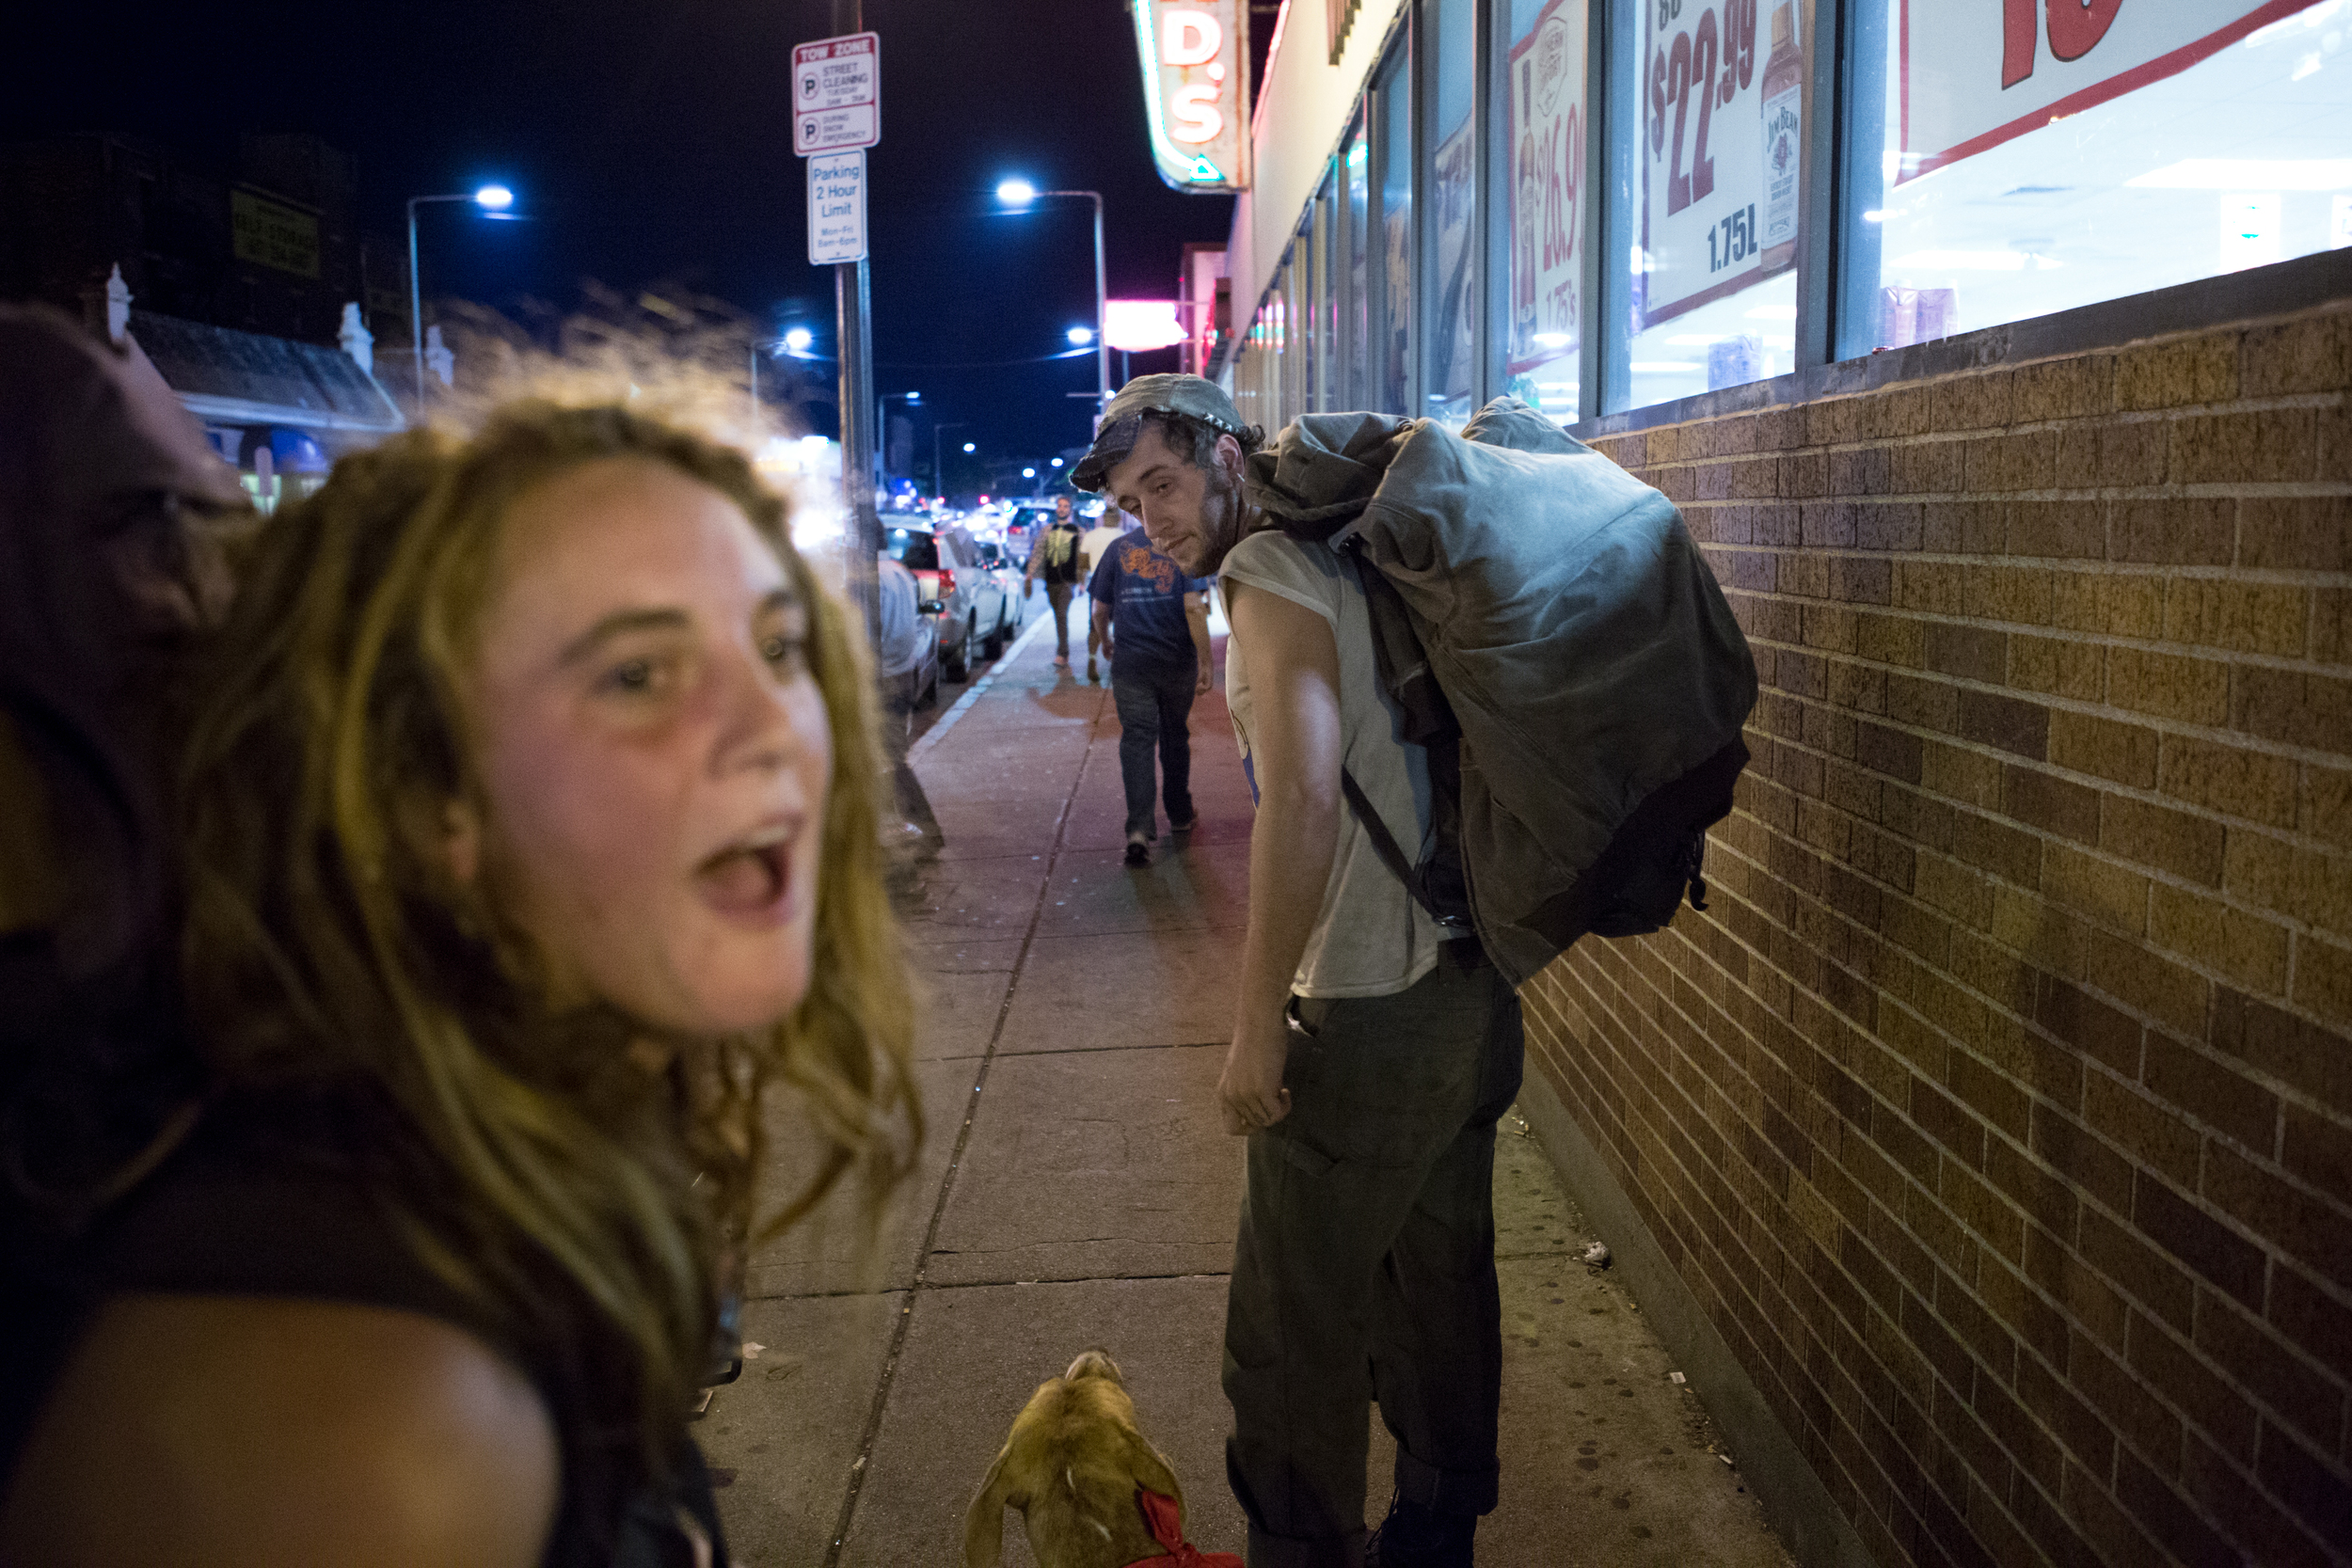 """Two 20-year-old homeless people who asked to be identified as Toby (left) and Anchor (right) depart the location where they had been asking pedestrians for money and alcohol outside Blanchard's liquor store in Allston after police asked them to leave. """"I ran away at 13,"""" Anchor said. """"Probably because my mom wanted me to do dishes."""" Photo credit: Justin Saglio"""